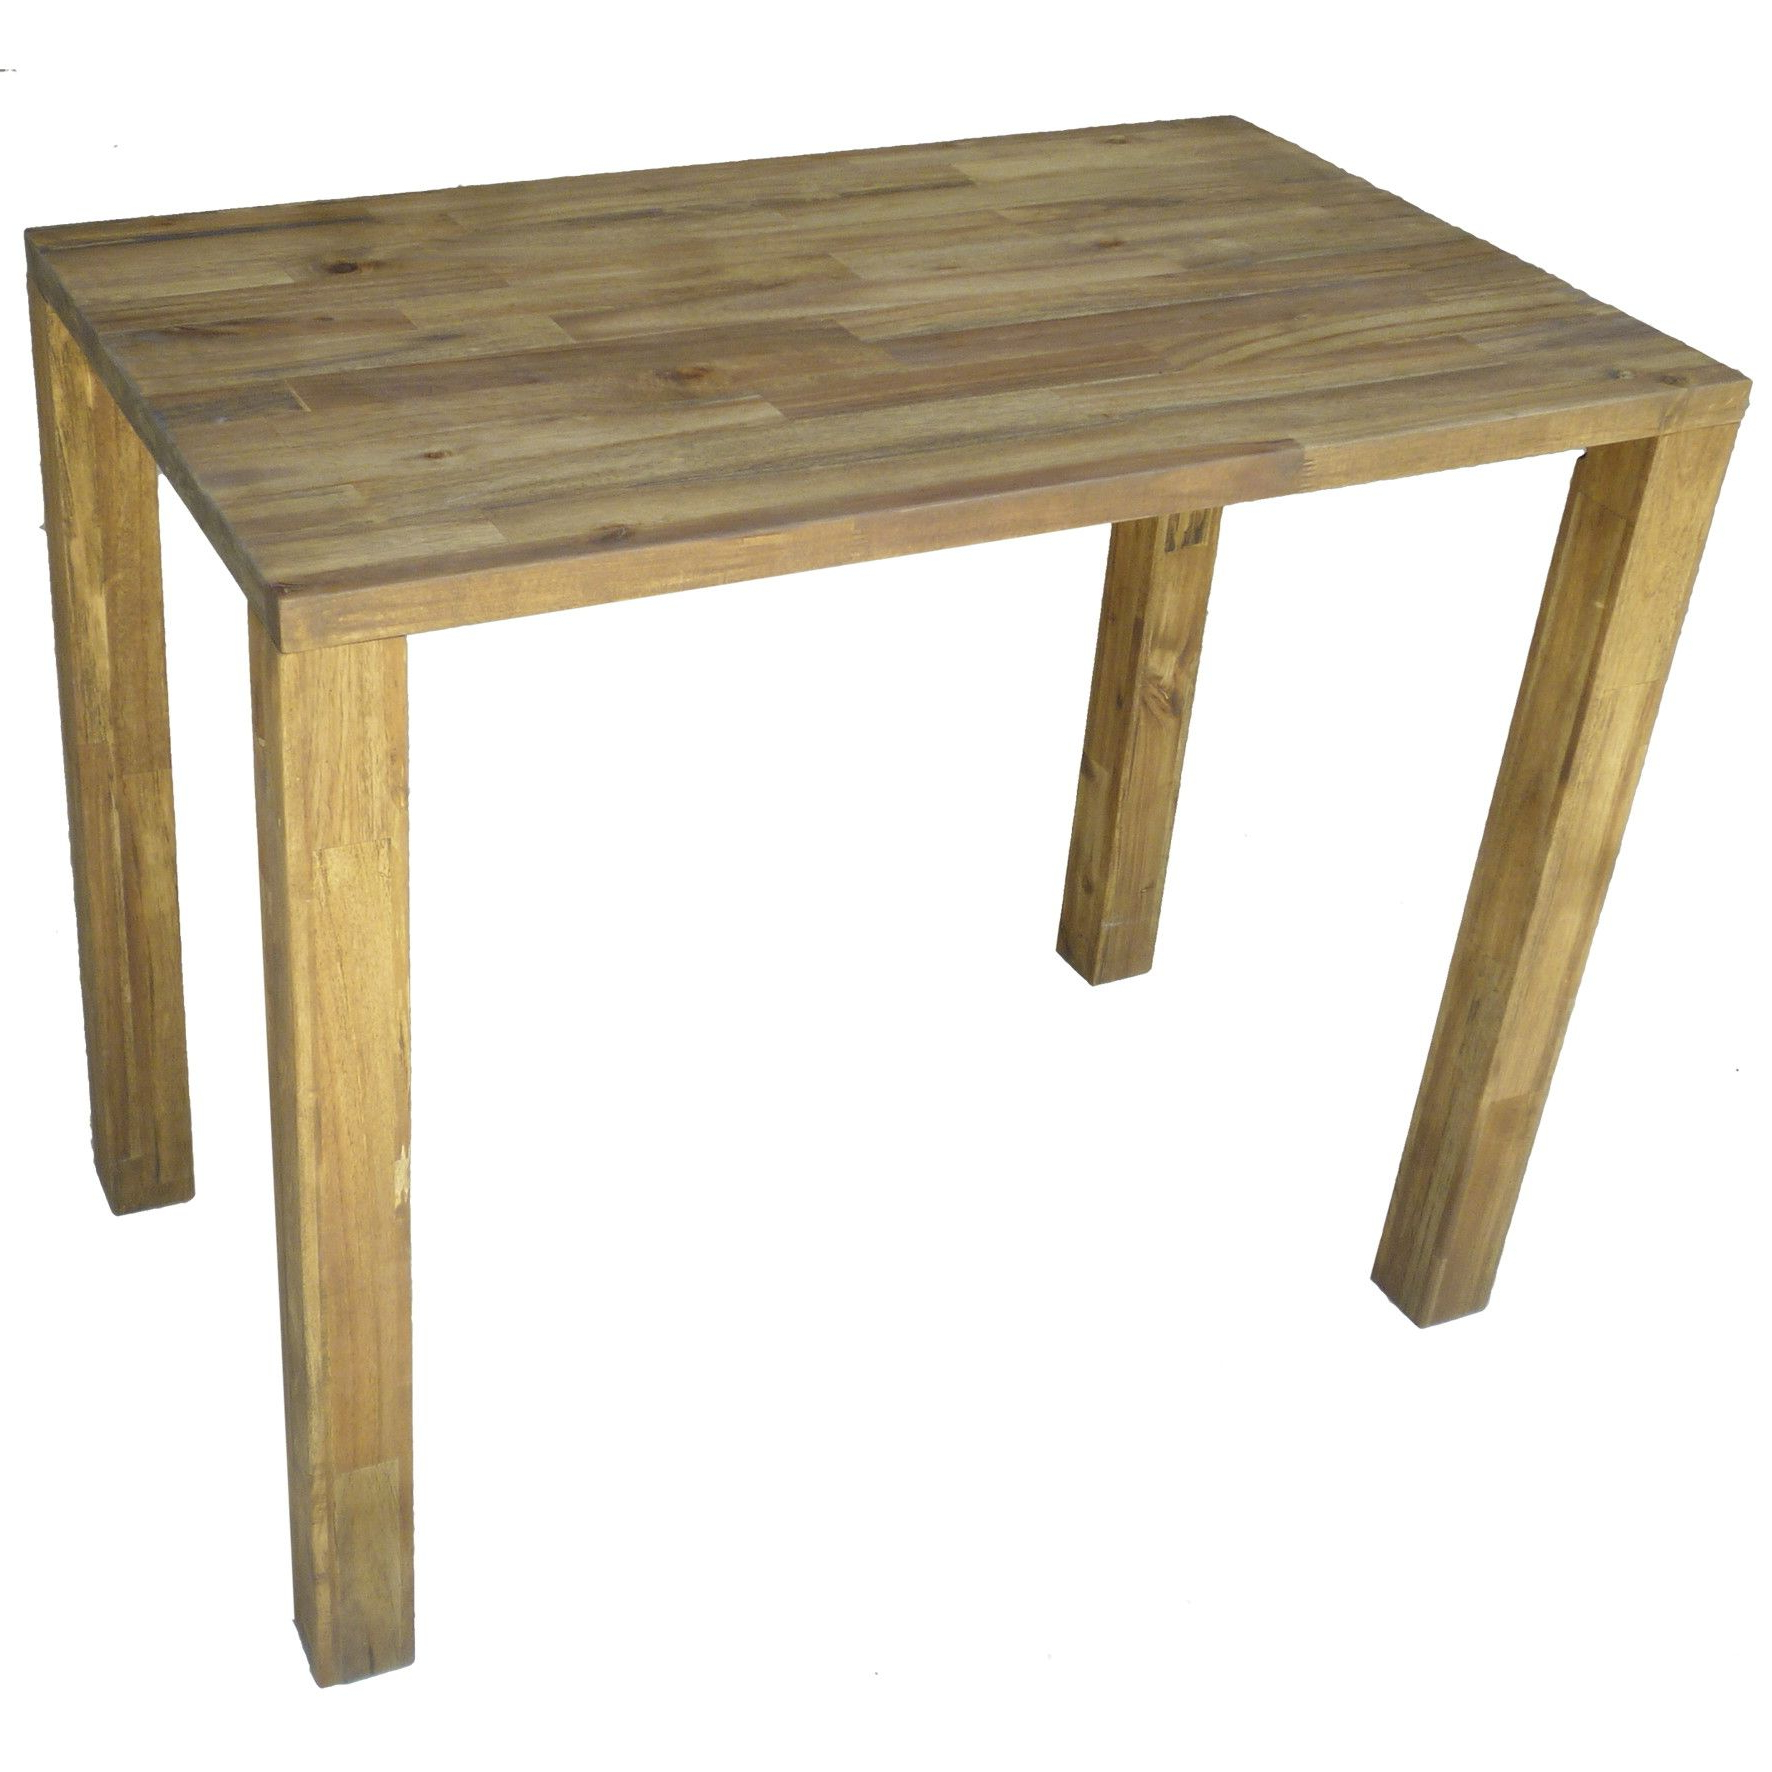 Well Known Avondale Counter Height Dining Tables Regarding Loon Peak Avondale Counter Height Dining Table (View 5 of 25)